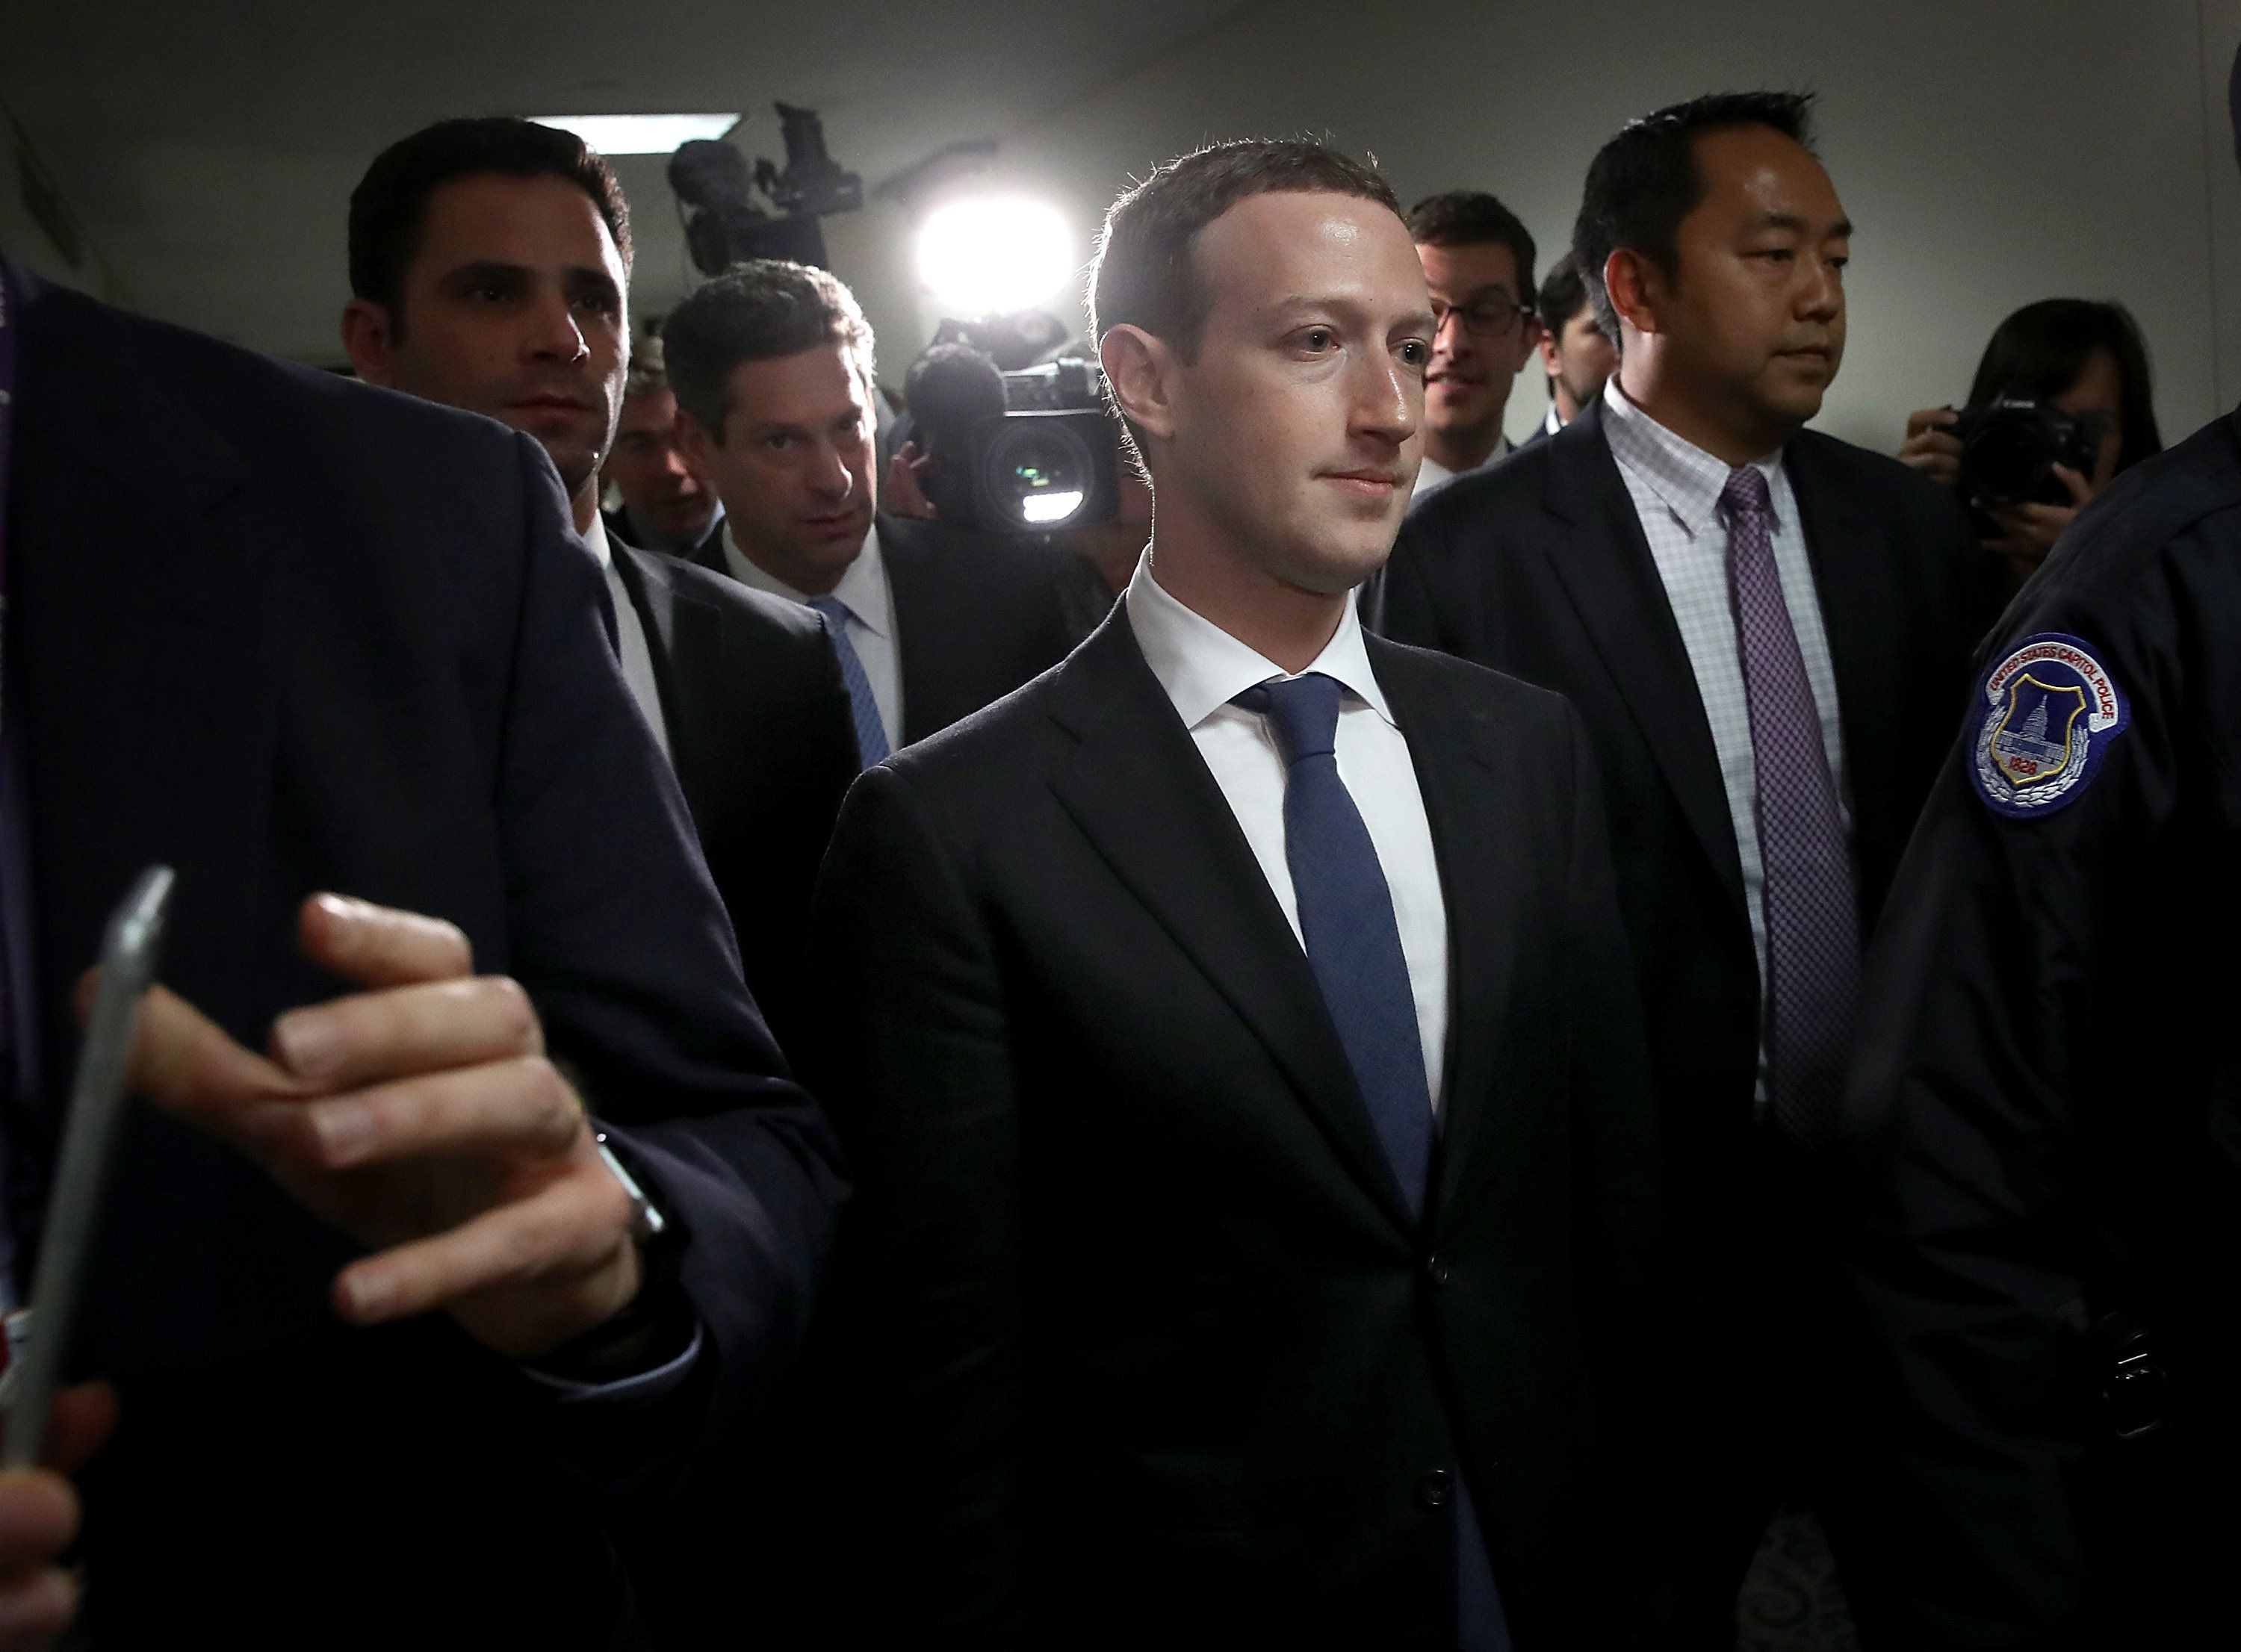 Mark Zuckerberg Hearing: 6 Questions Facebook's CEO Needs To